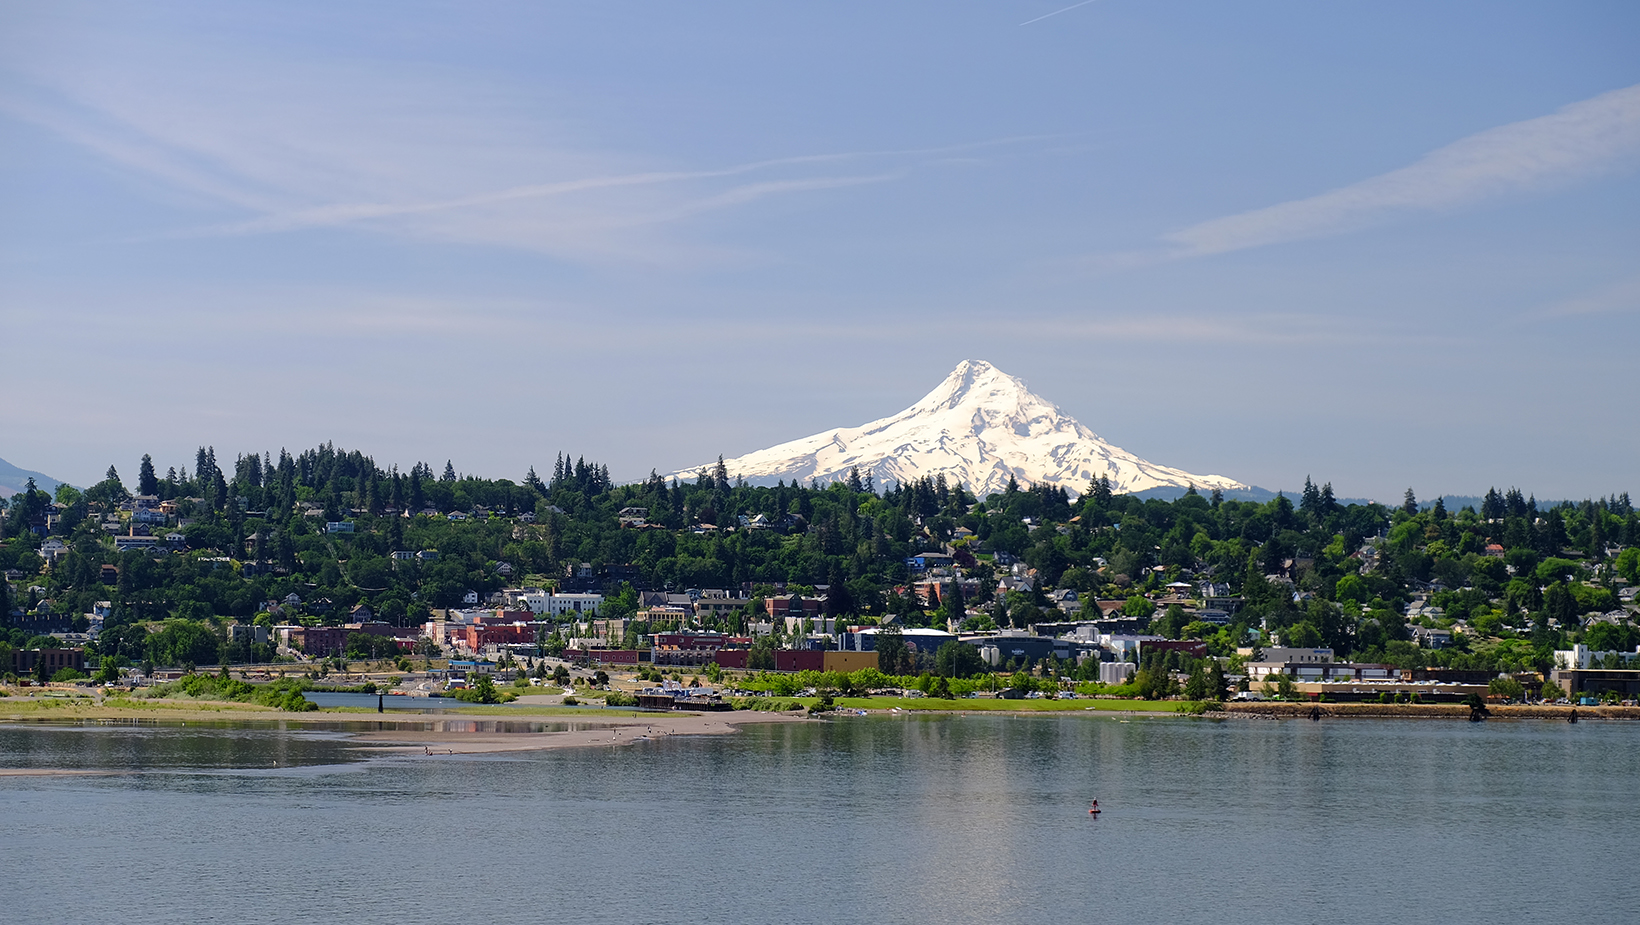 Looking south at the town of Hood River with majestic Mt. Hood in the background